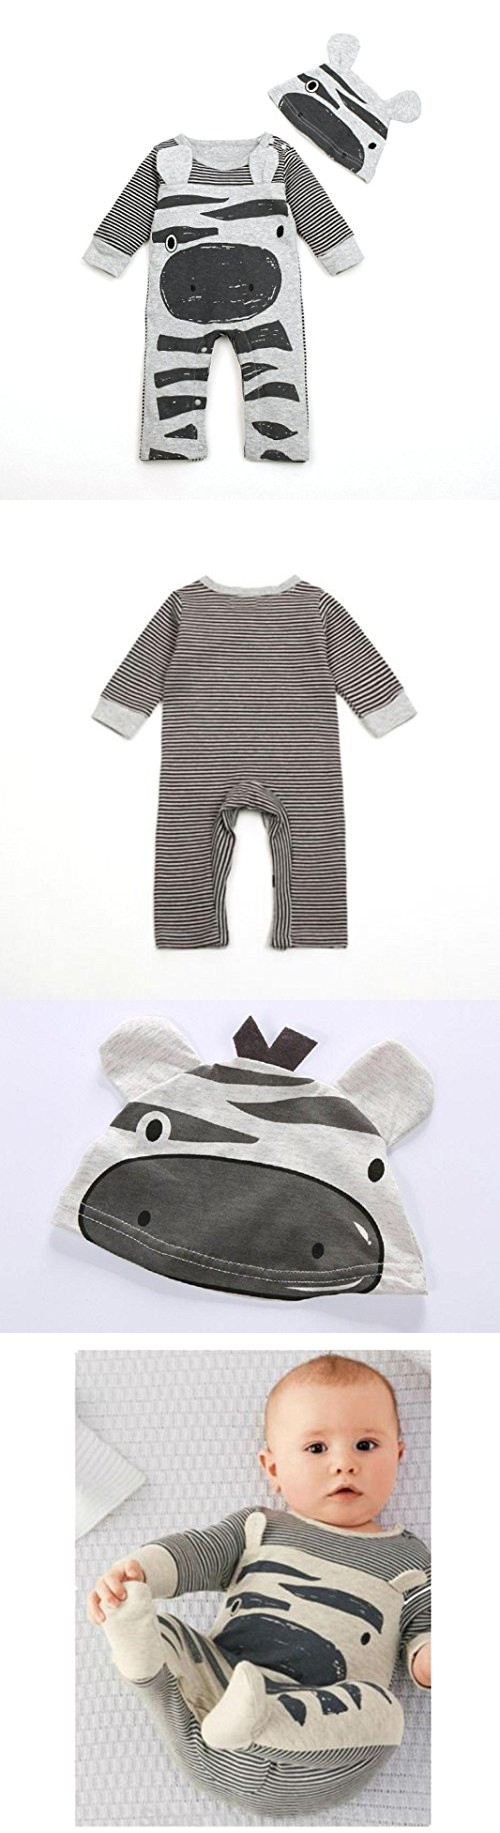 Efaster(TM) Infant Baby Boys Girls Romper+Hat Jumpsuit Bodysuit Clothes Outfit (0-6M, Gray)